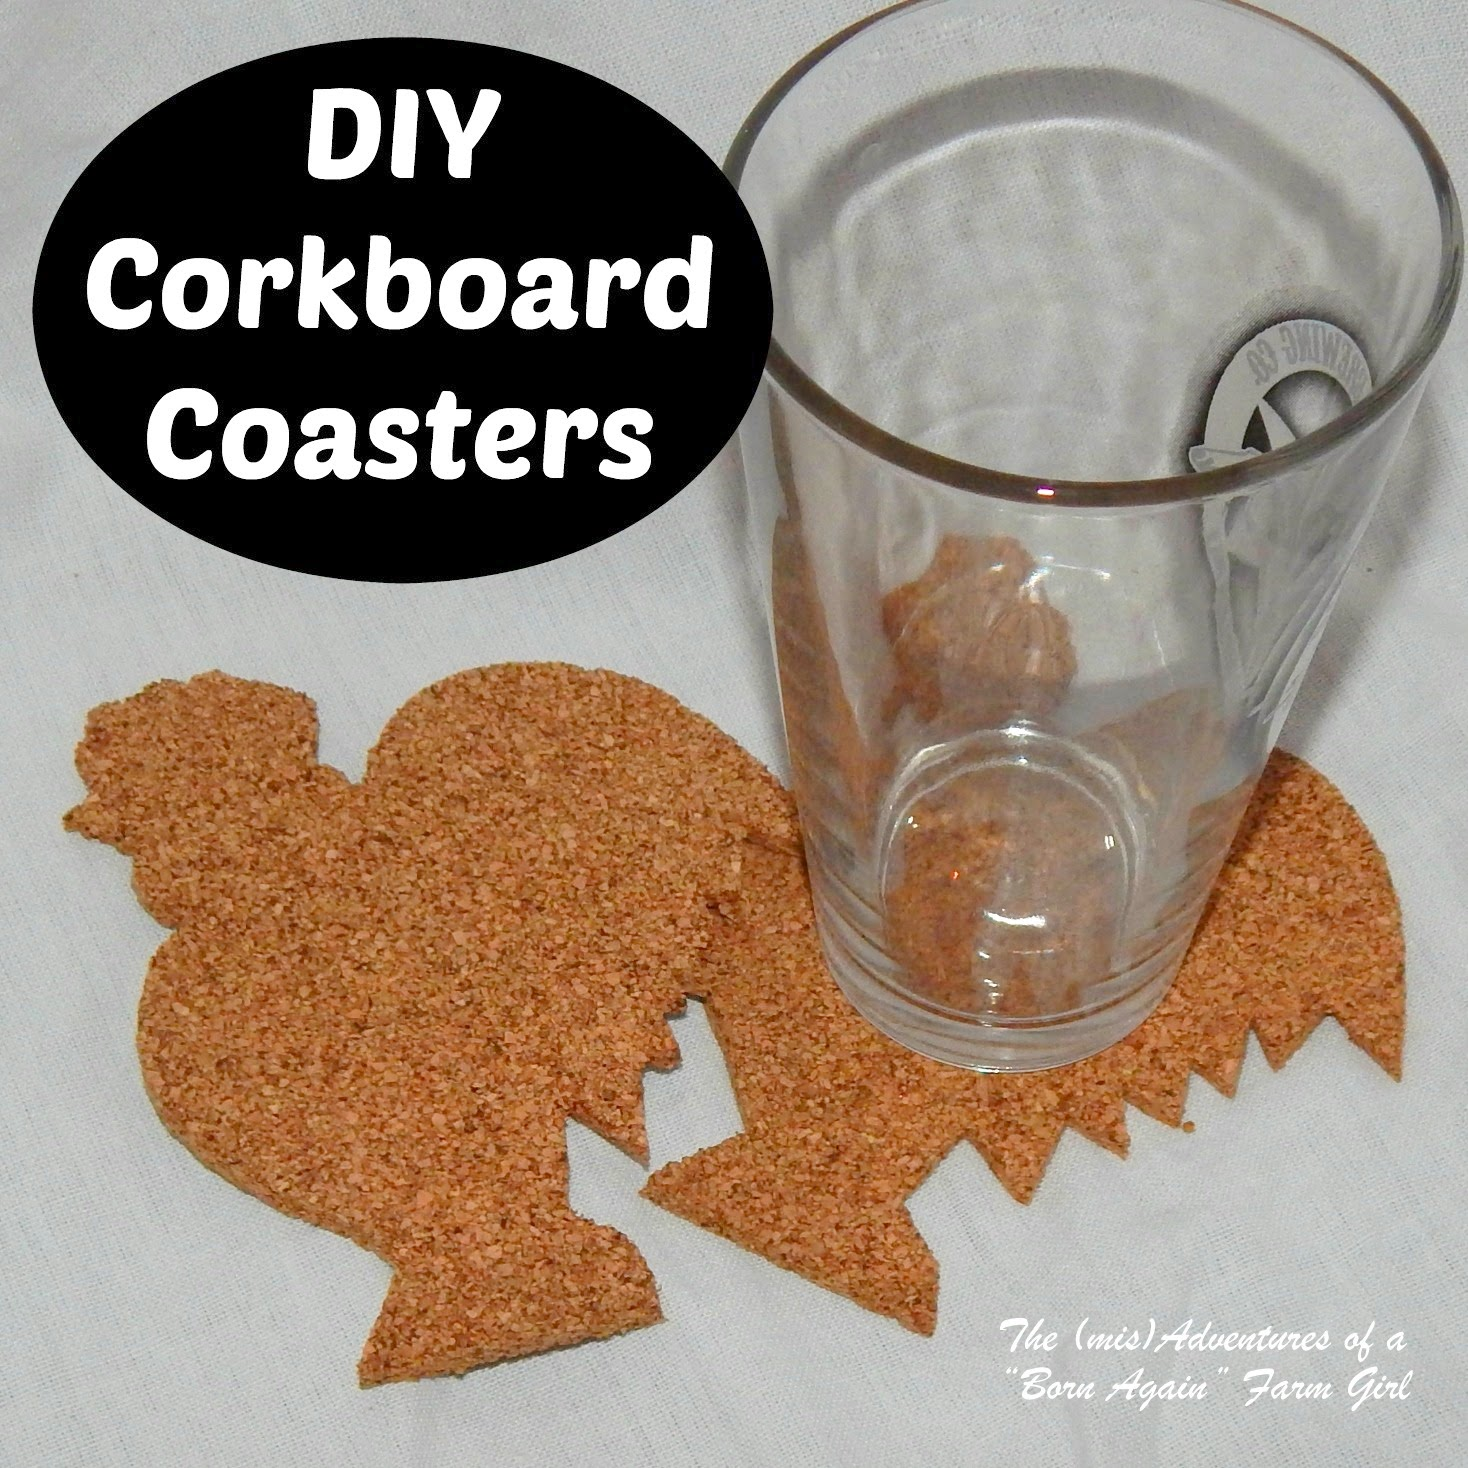 DIY Corkboard Coasters